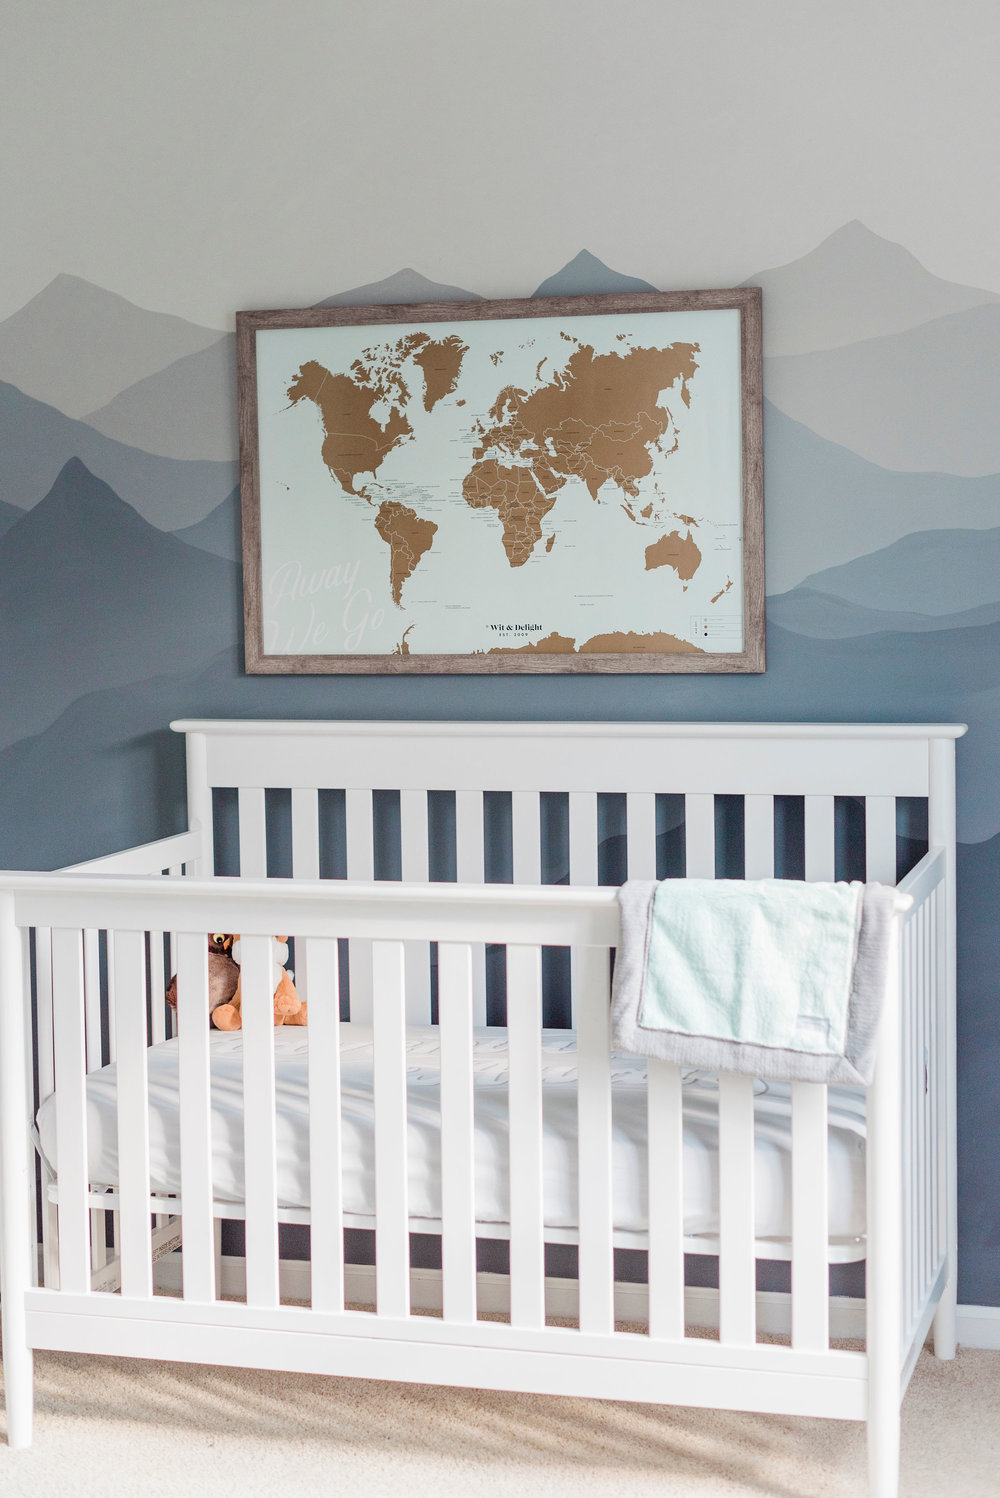 Crib:  Delta Children's Greyson